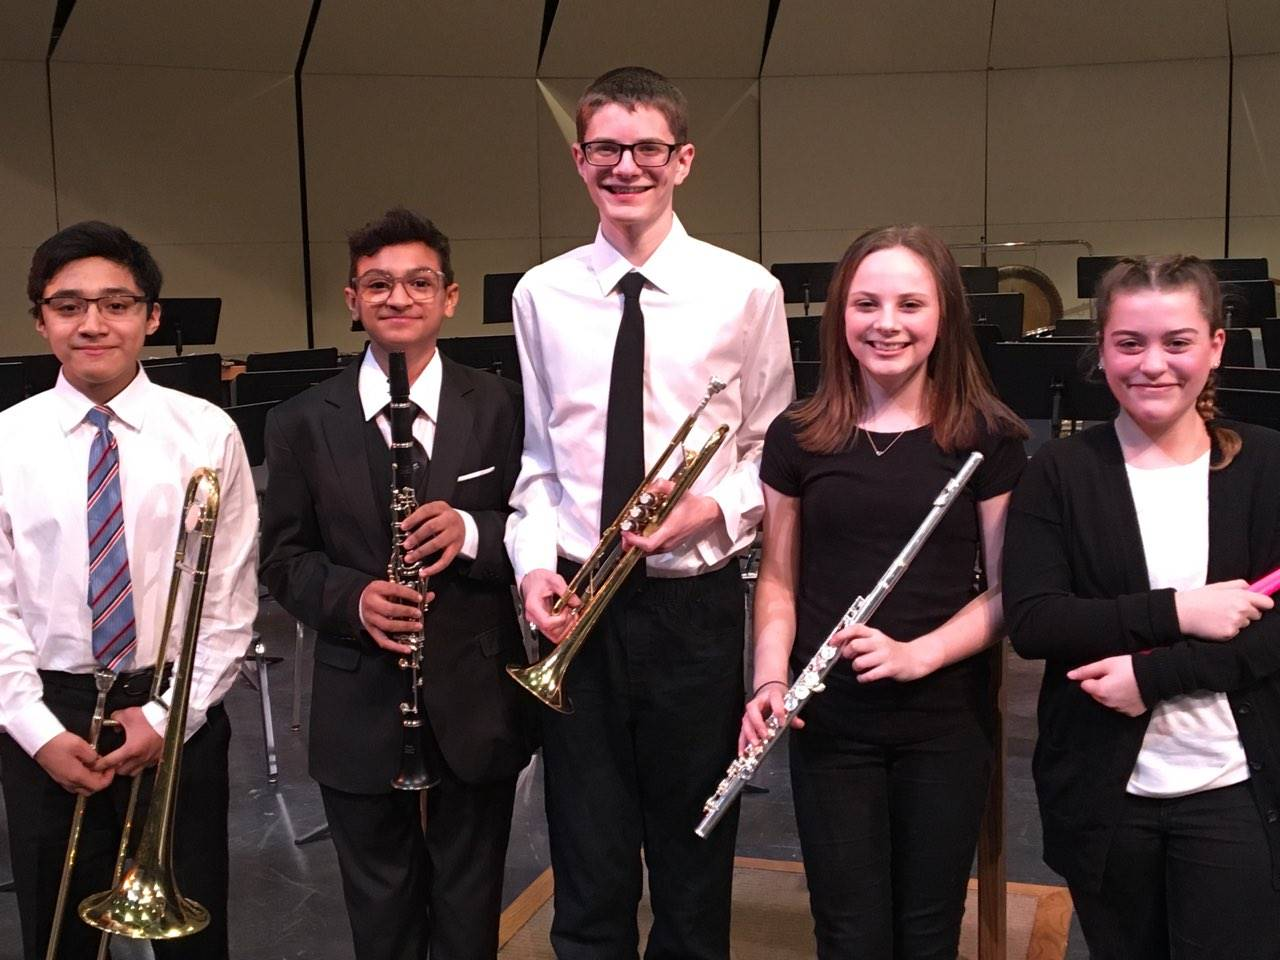 Garfield Heights Middle School student musicians